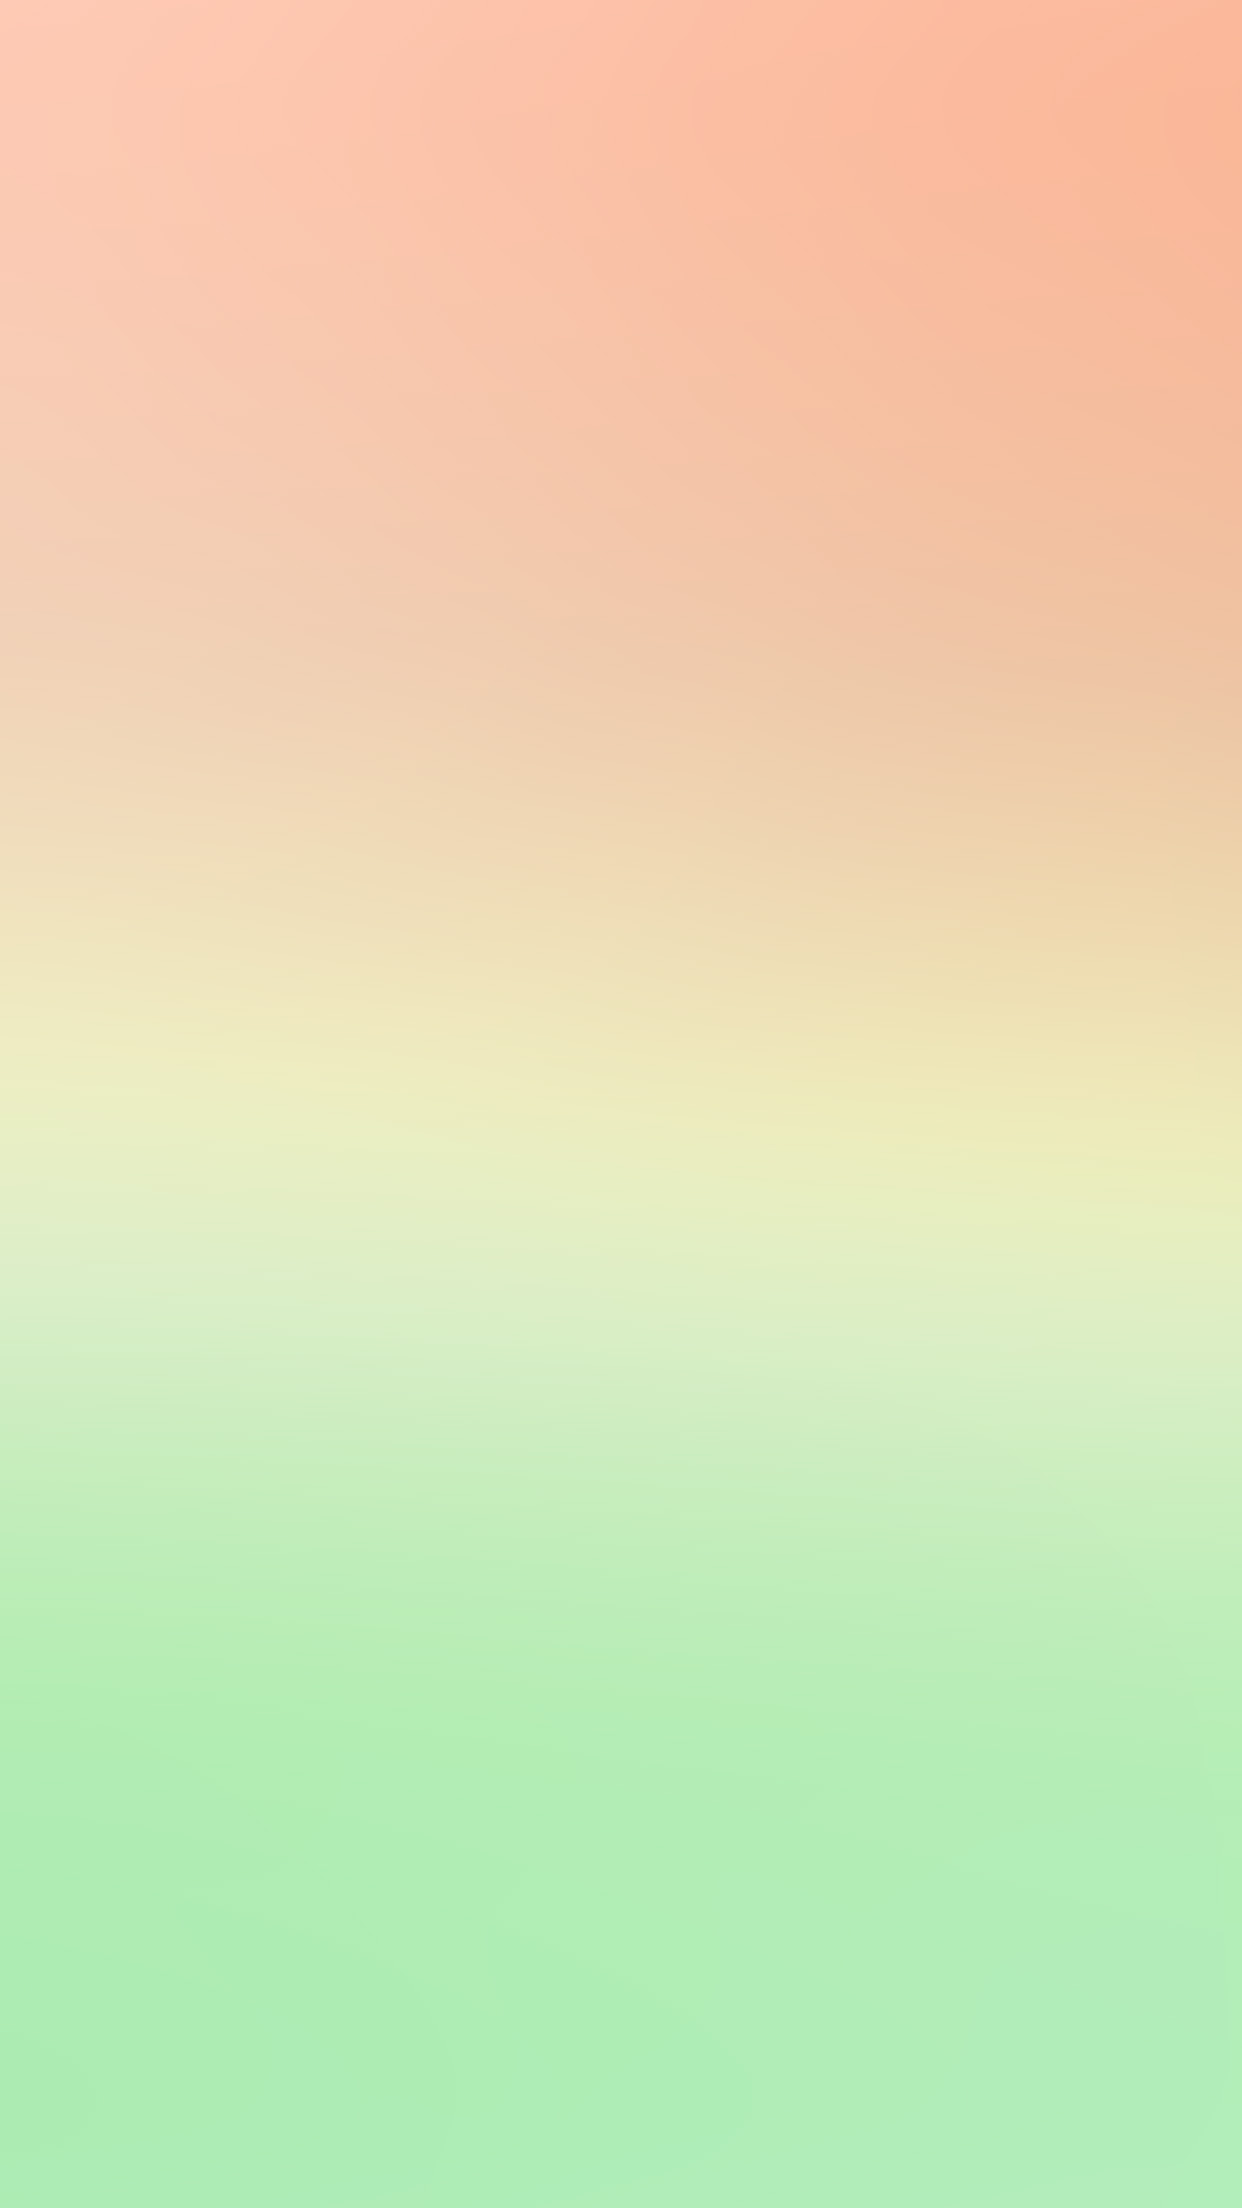 Sl92 Red Green Pastel Blur Gradation Wallpaper